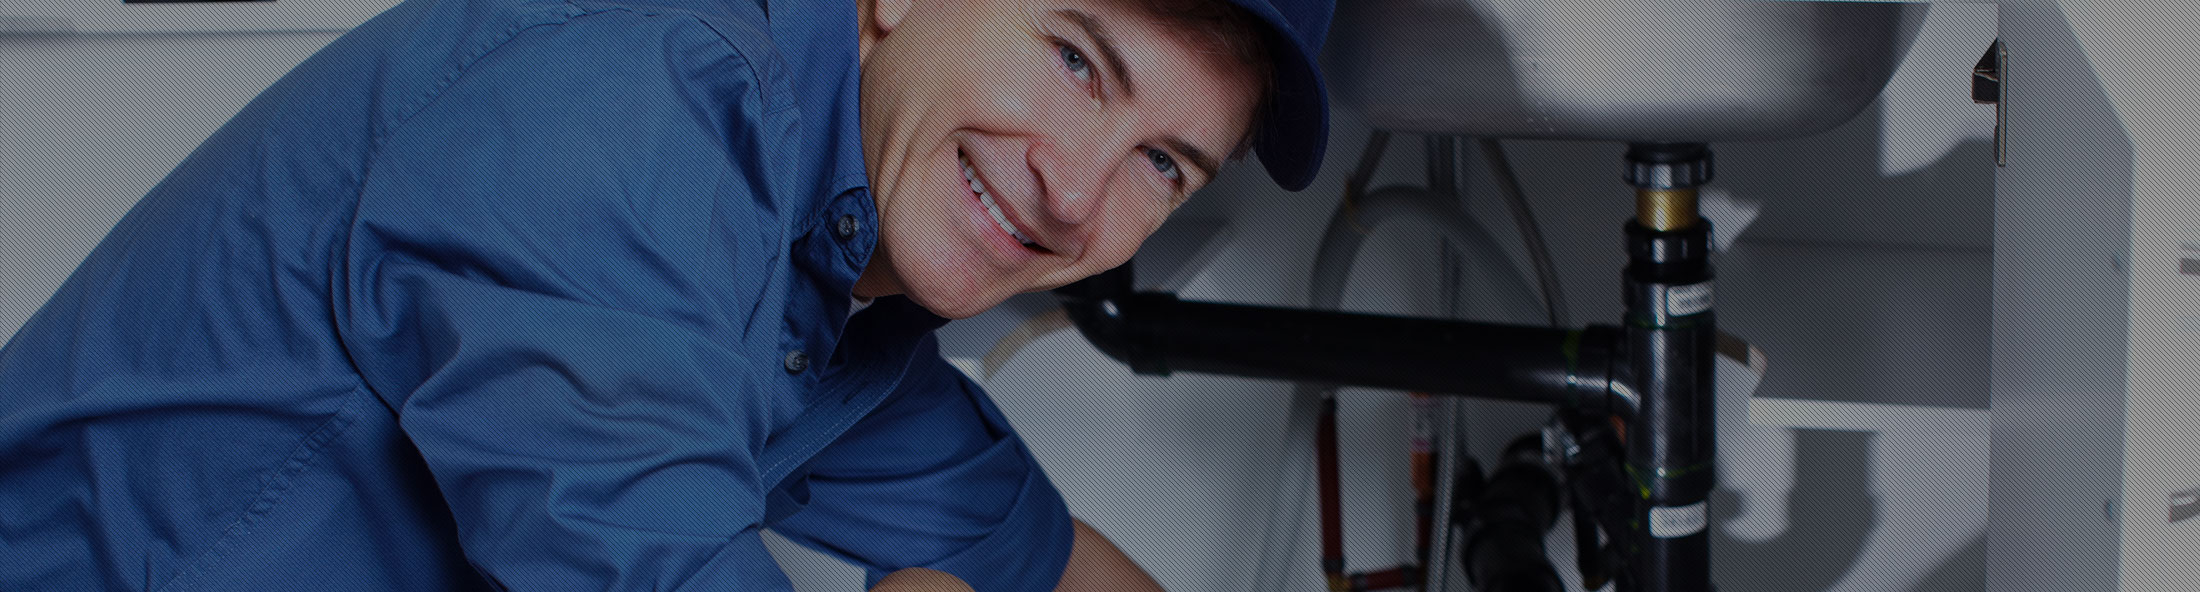 Plumbing Specialists in Box Springs, CA